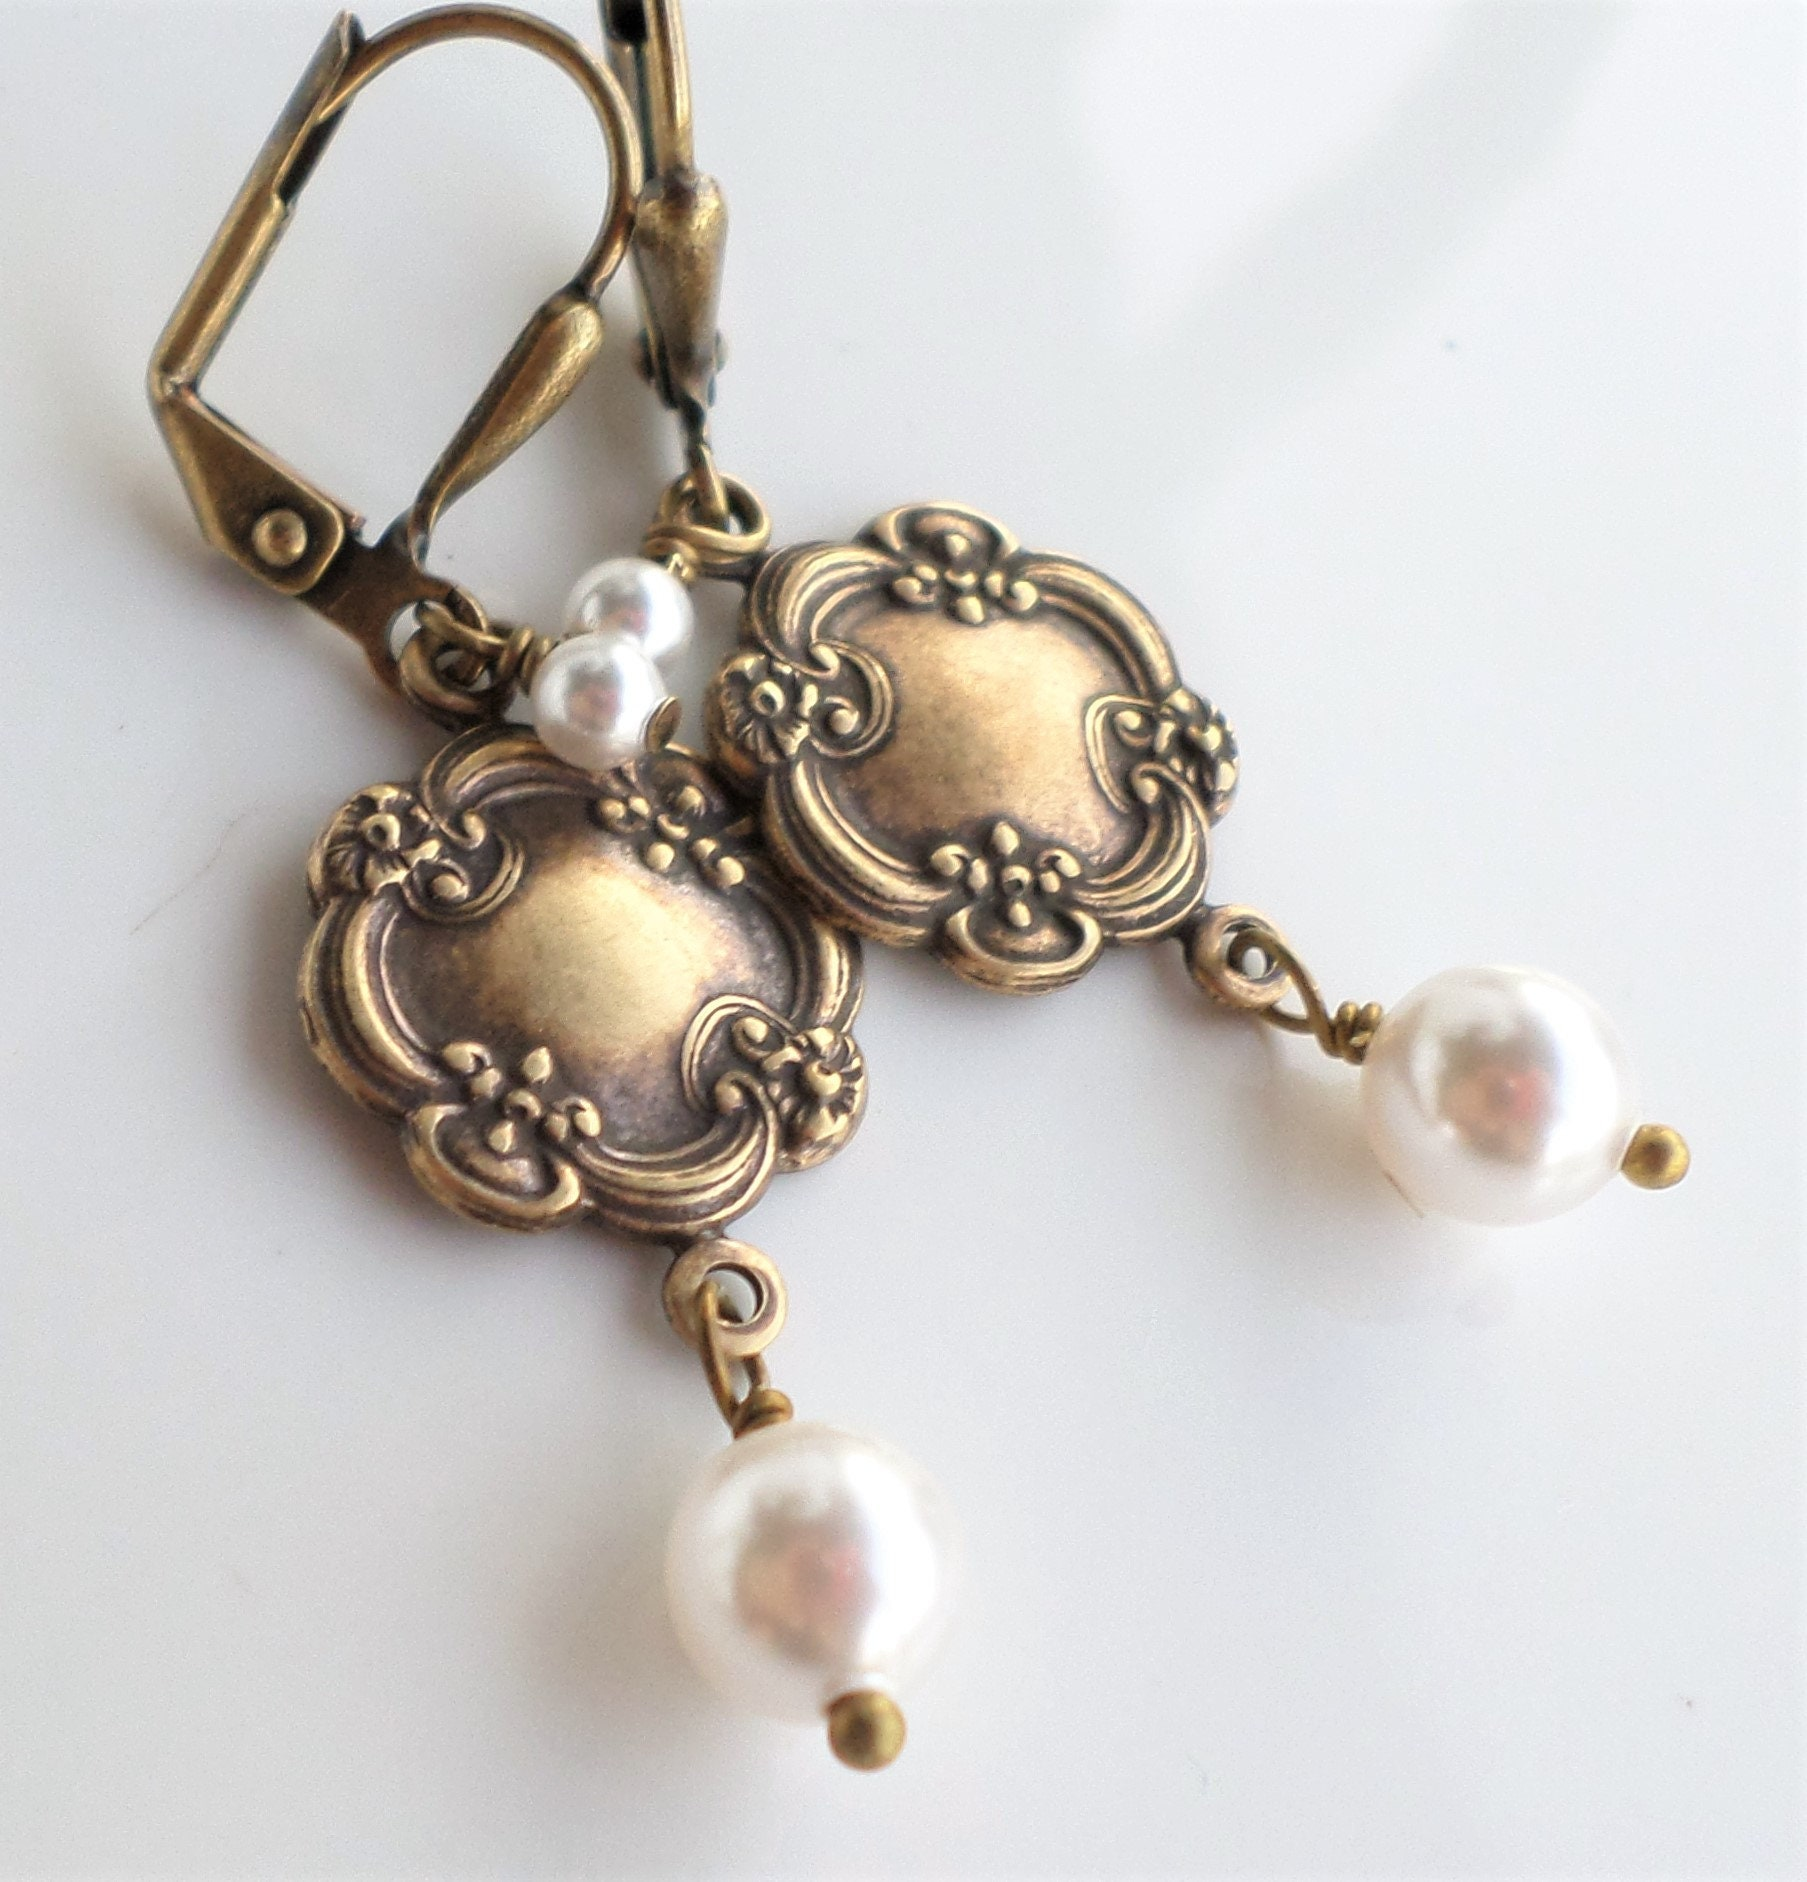 b07b31e74ea26 Victorian Art Nouveau Antique Brass Medallion Jewelry, Aged Brass Dangle  Earrings With WHITE Swarovski Pearls, Victorian Jewelry, Reign